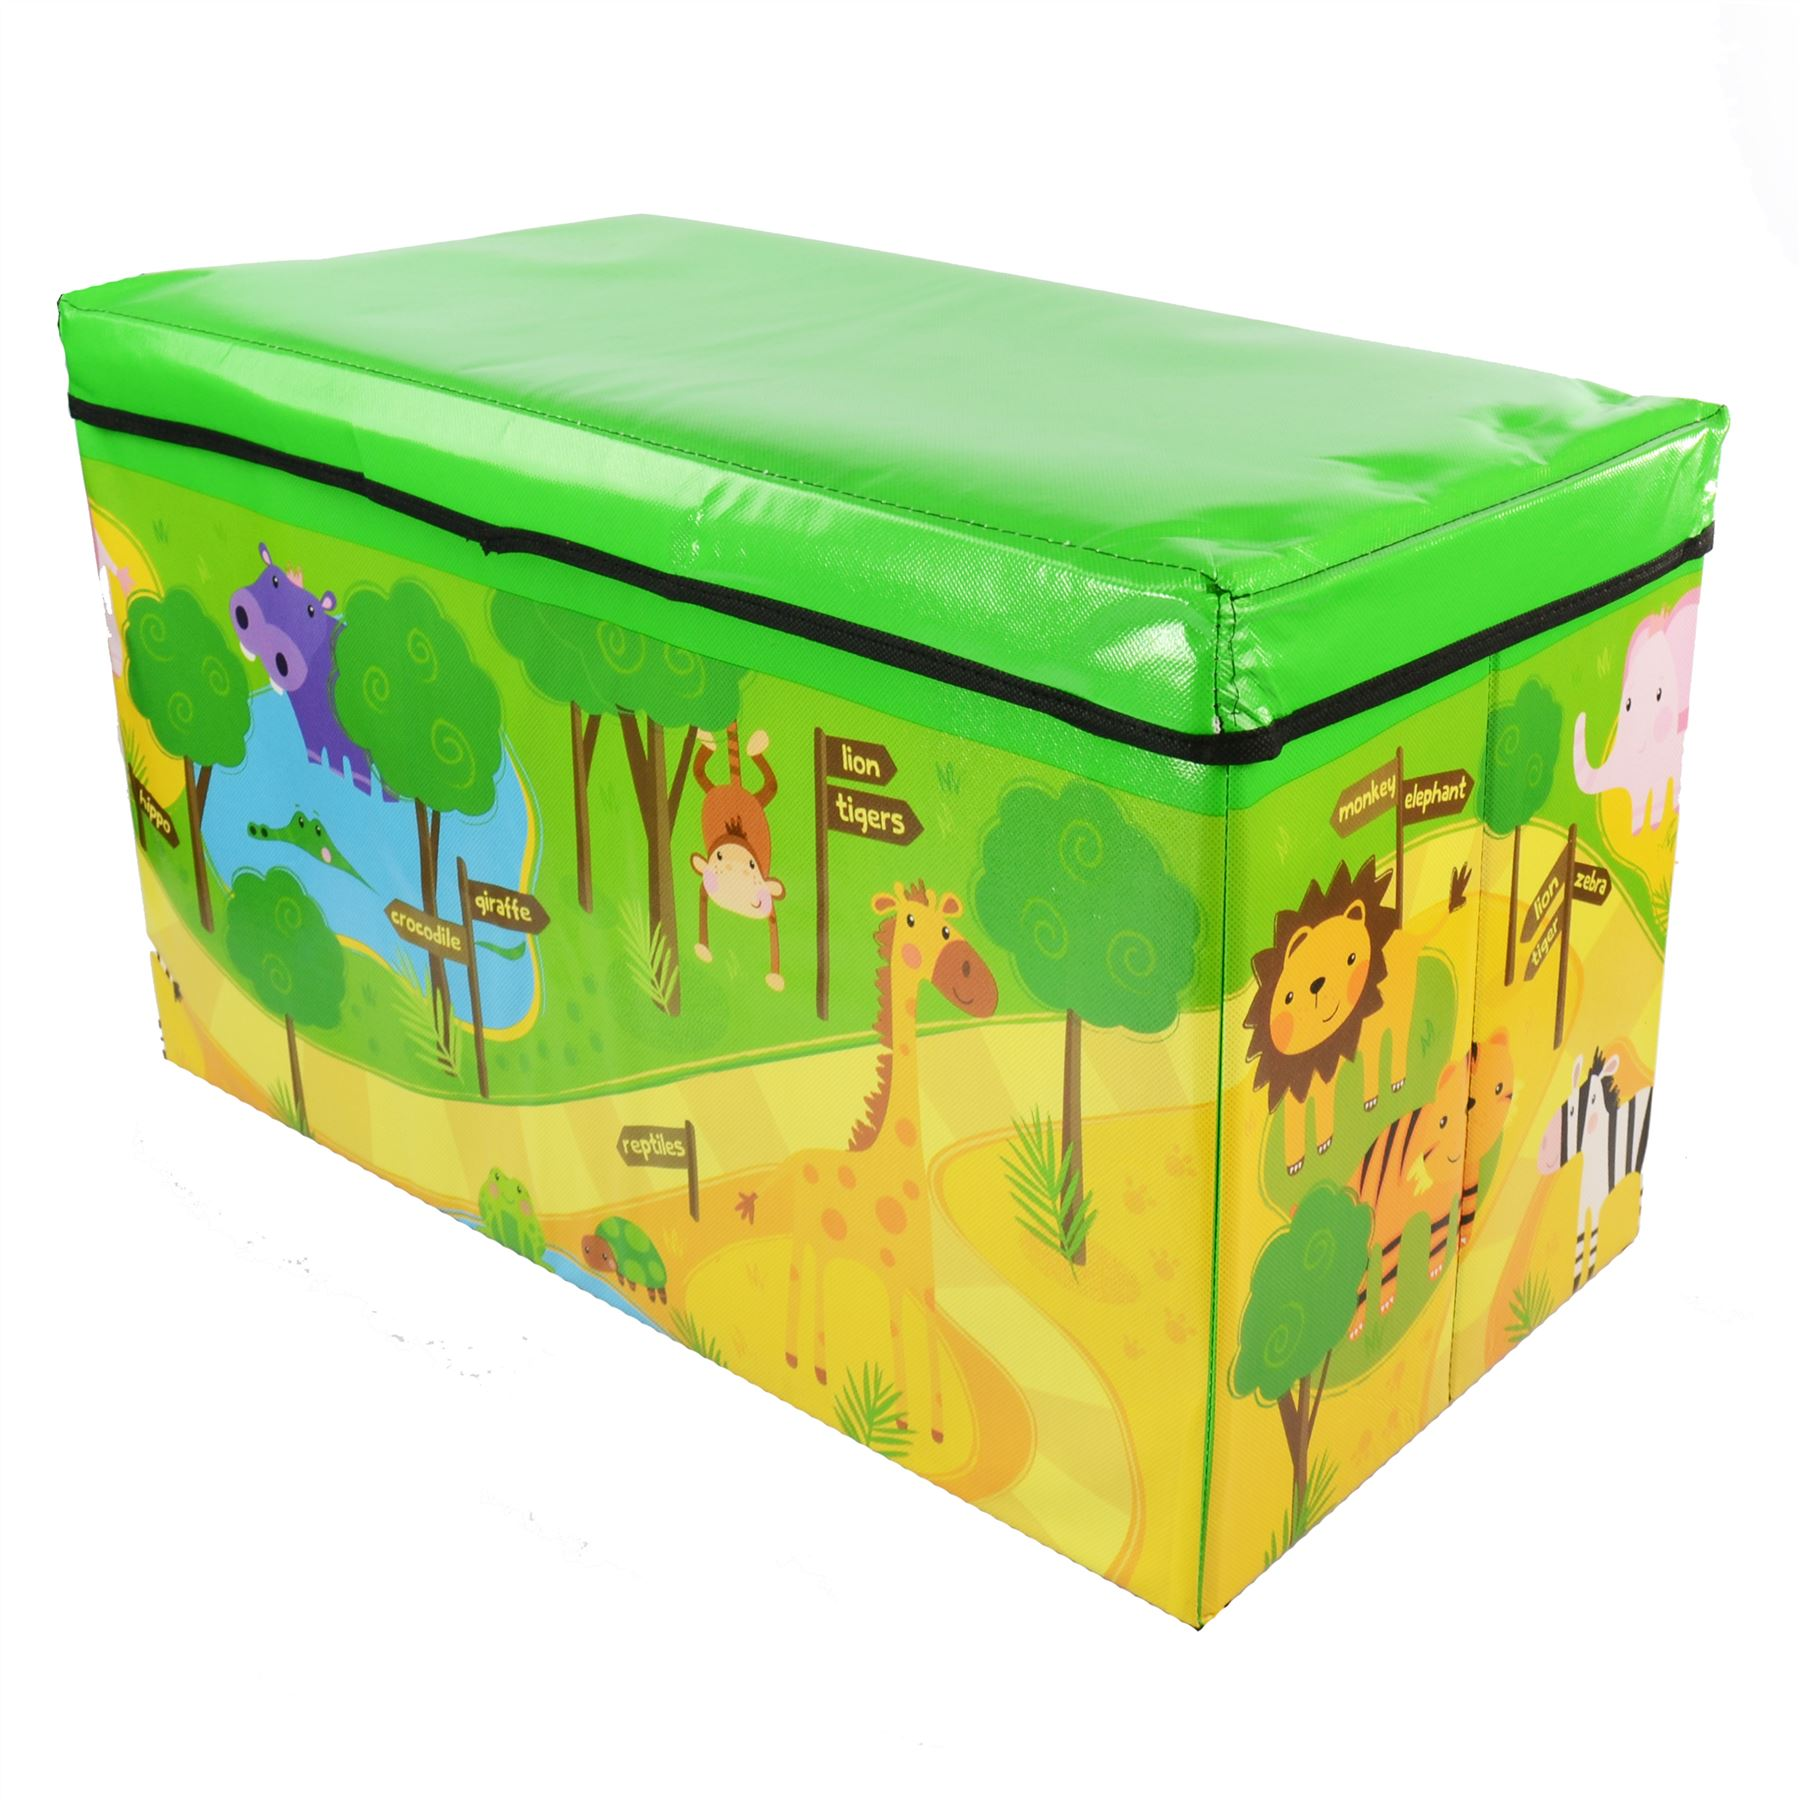 Princess Toys Box Storage Kids Girls Chest Bedroom Clothes: Boys Girls Kids Large Folding Storage Toy Box Books Chest